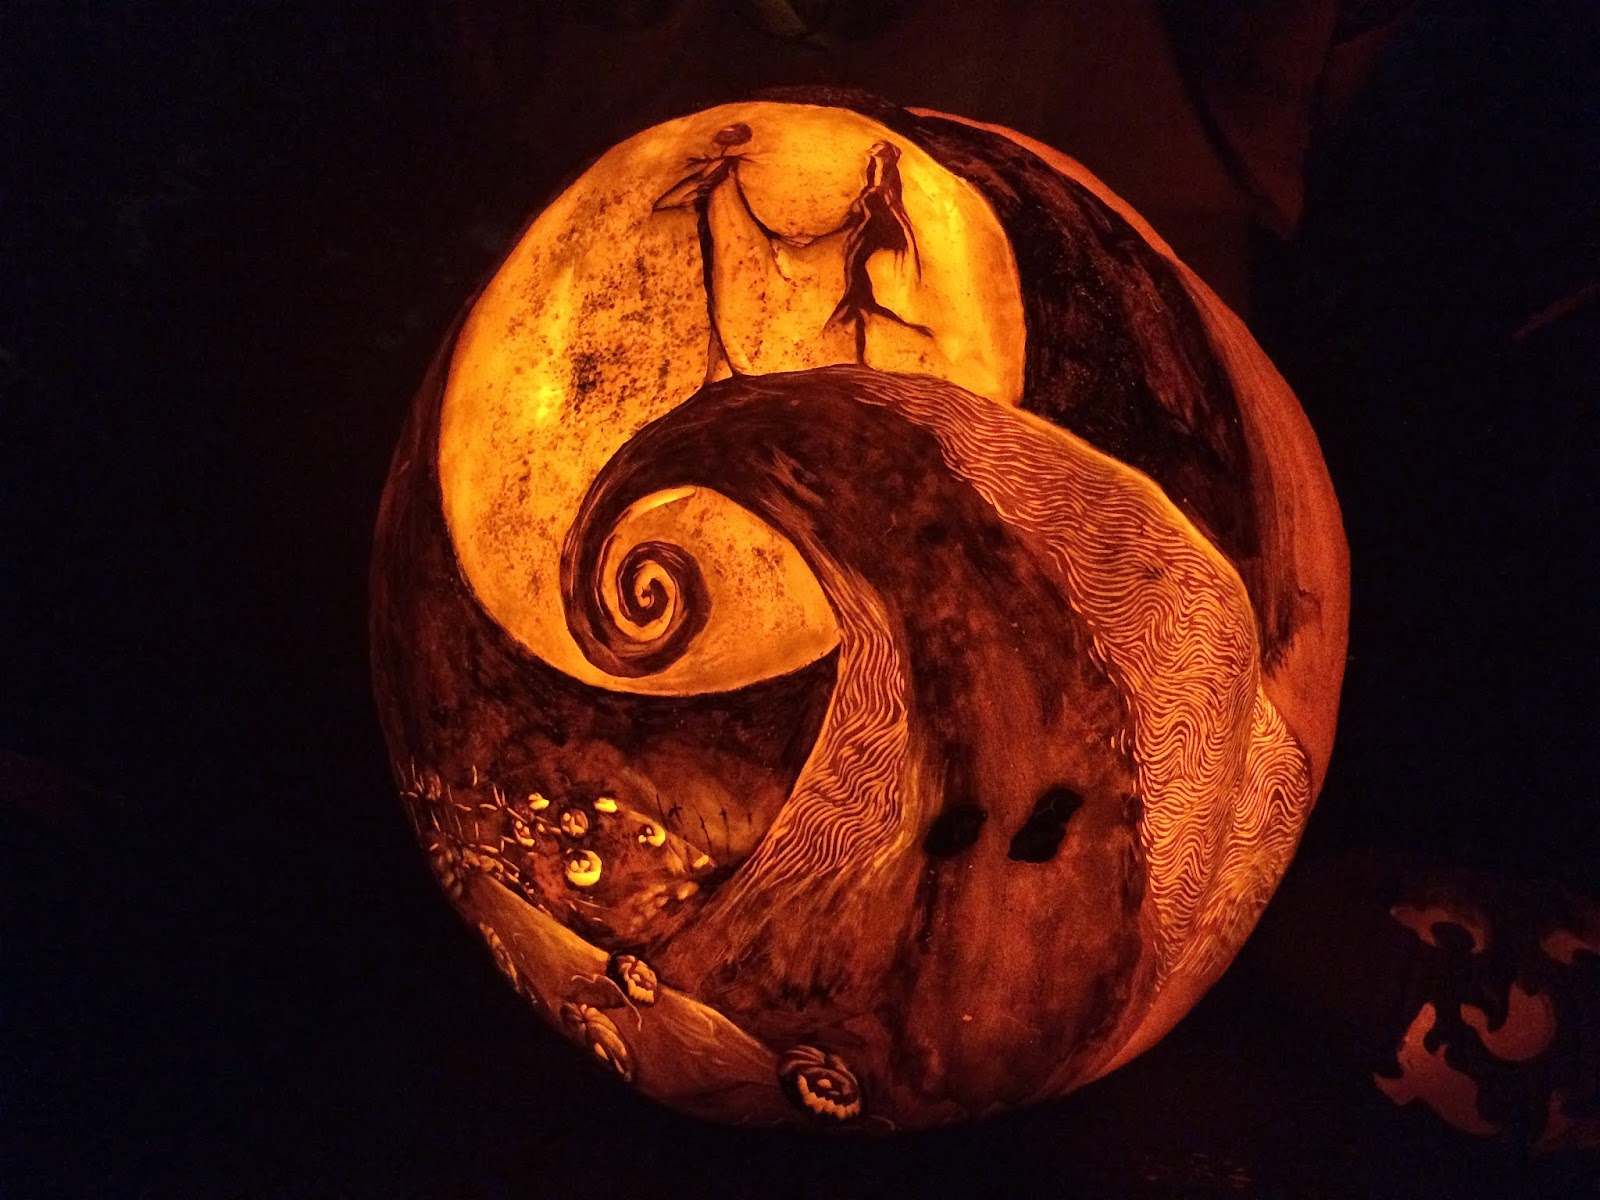 The Andrew Project Jack O Lantern Spectacular